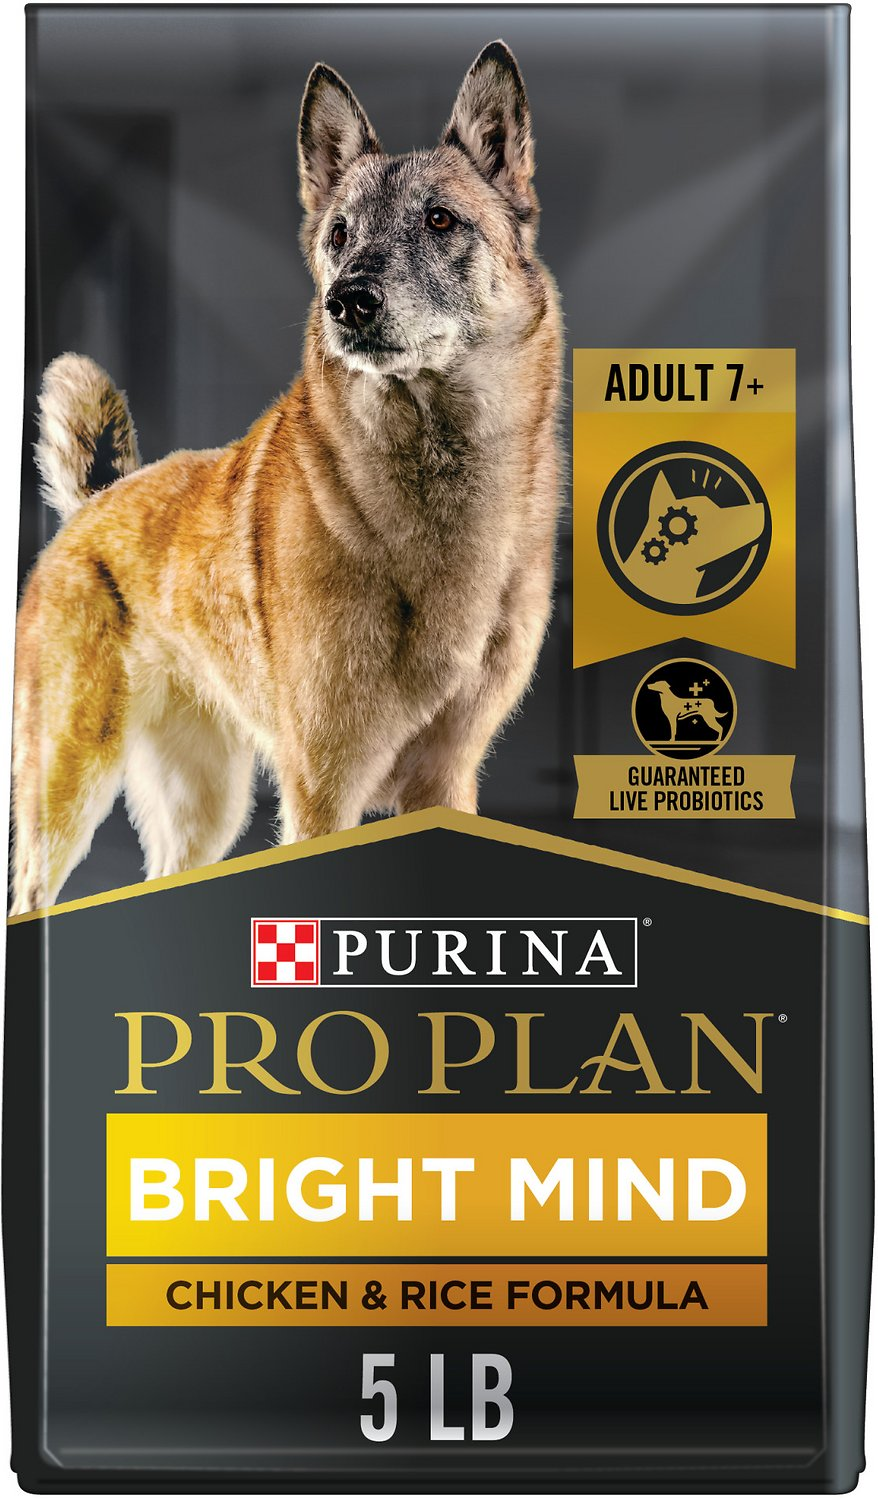 b325c56aa7f97 Purina Pro Plan Bright Mind Adult 7+ Chicken   Rice Formula Dry Dog Food